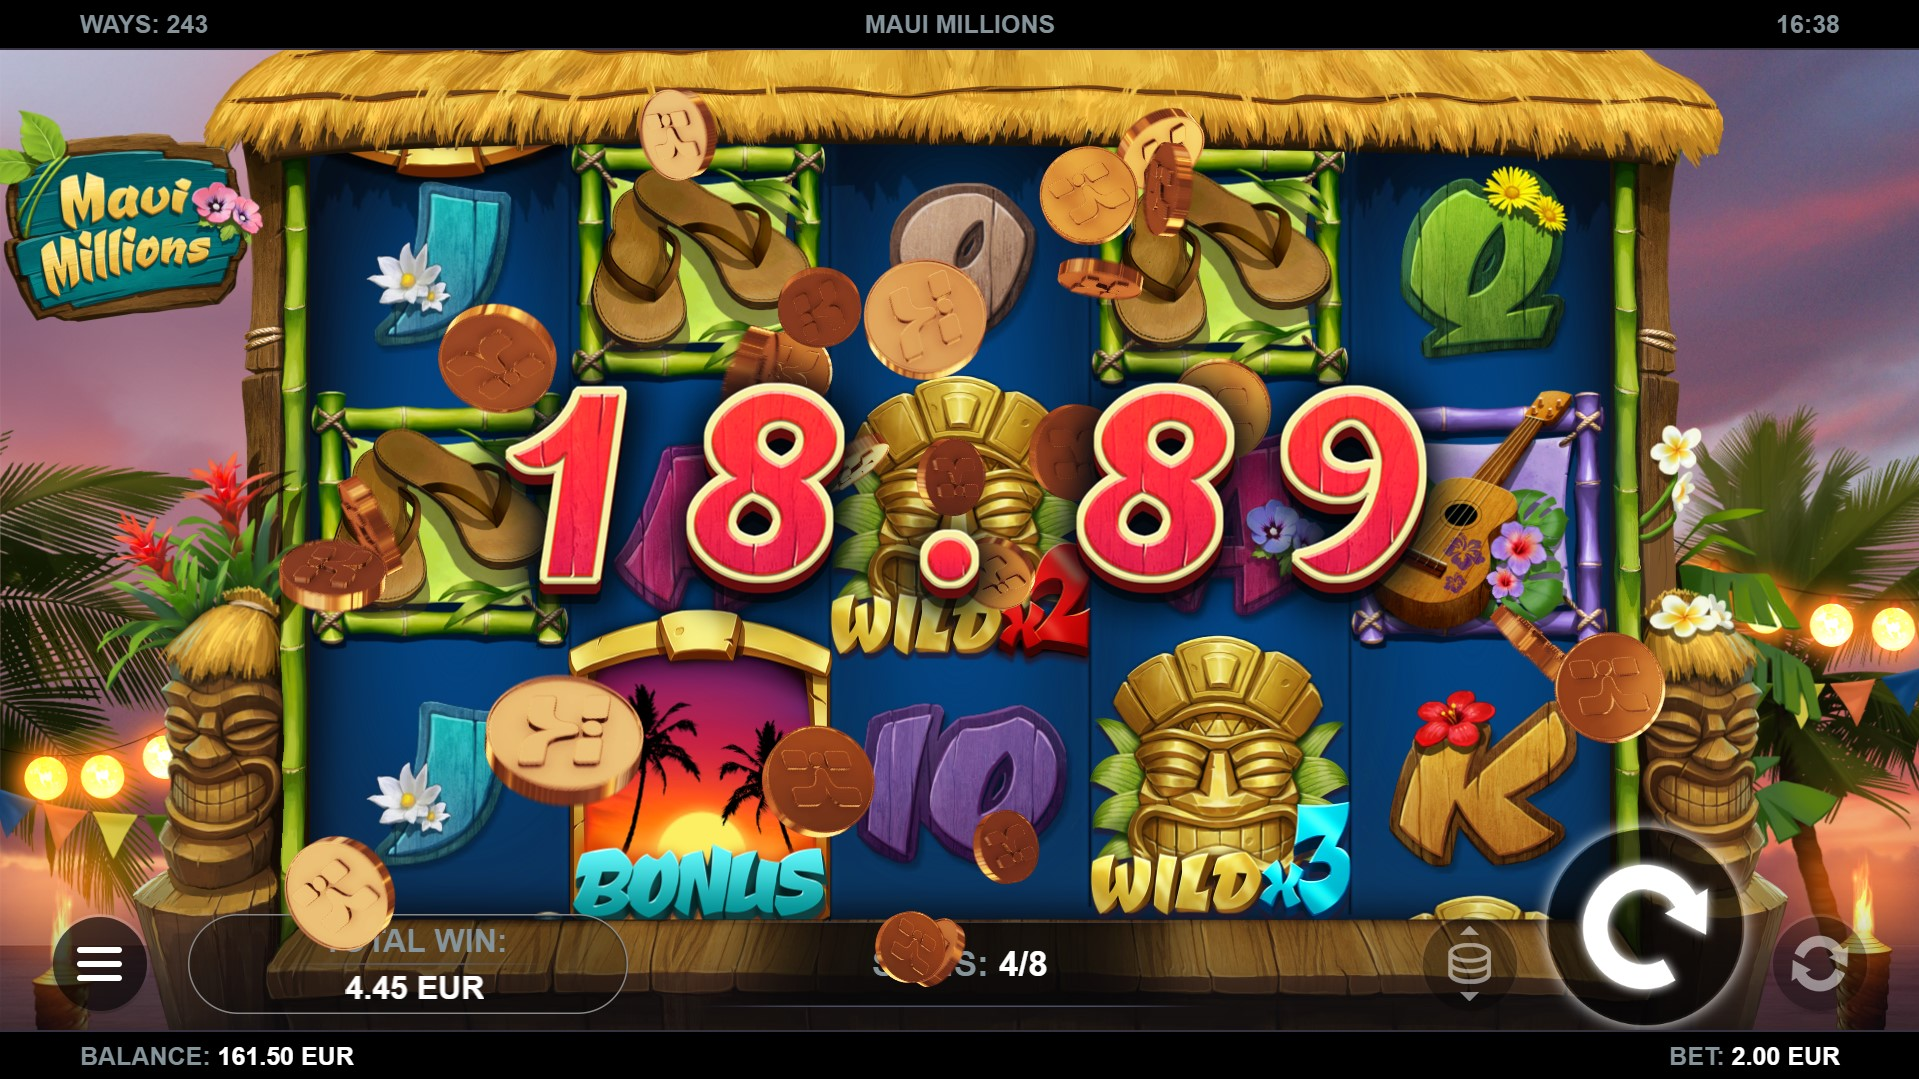 Maui Millions Screenshot